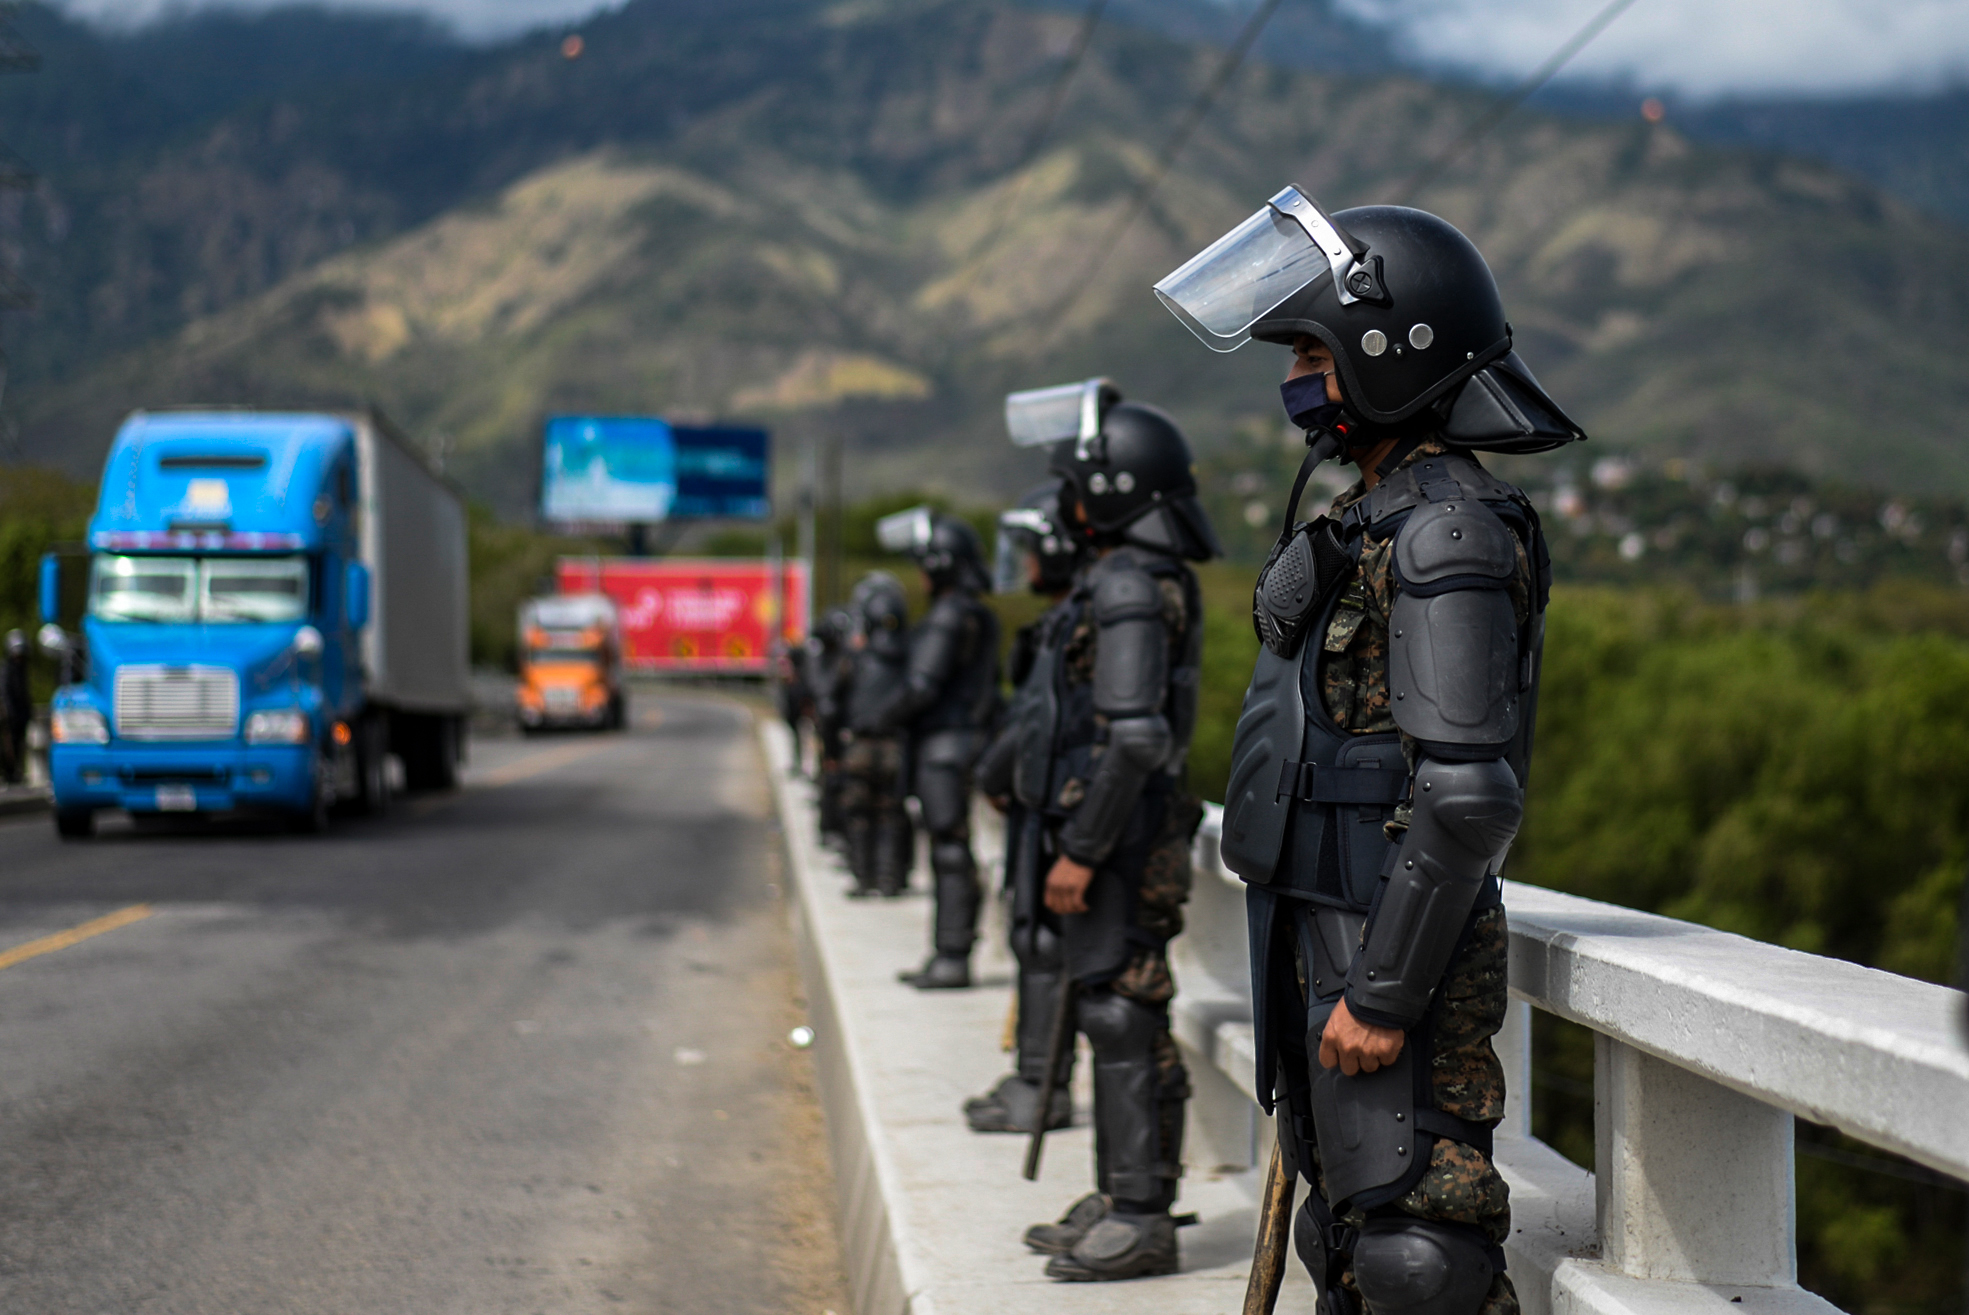 Members Guatemalan Army stand guard at a bridge in Zacapa, Guatemala on January 19, 2021. - On buses and trucks, Guatemala transported Tuesday several groups of migrants who were part of a US-bound caravan back to Honduras, after police and military officers forced them to desist from the crossing. (Photo by Johan ORDONEZ / AFP) (Photo by JOHAN ORDONEZ/AFP via Getty Images)